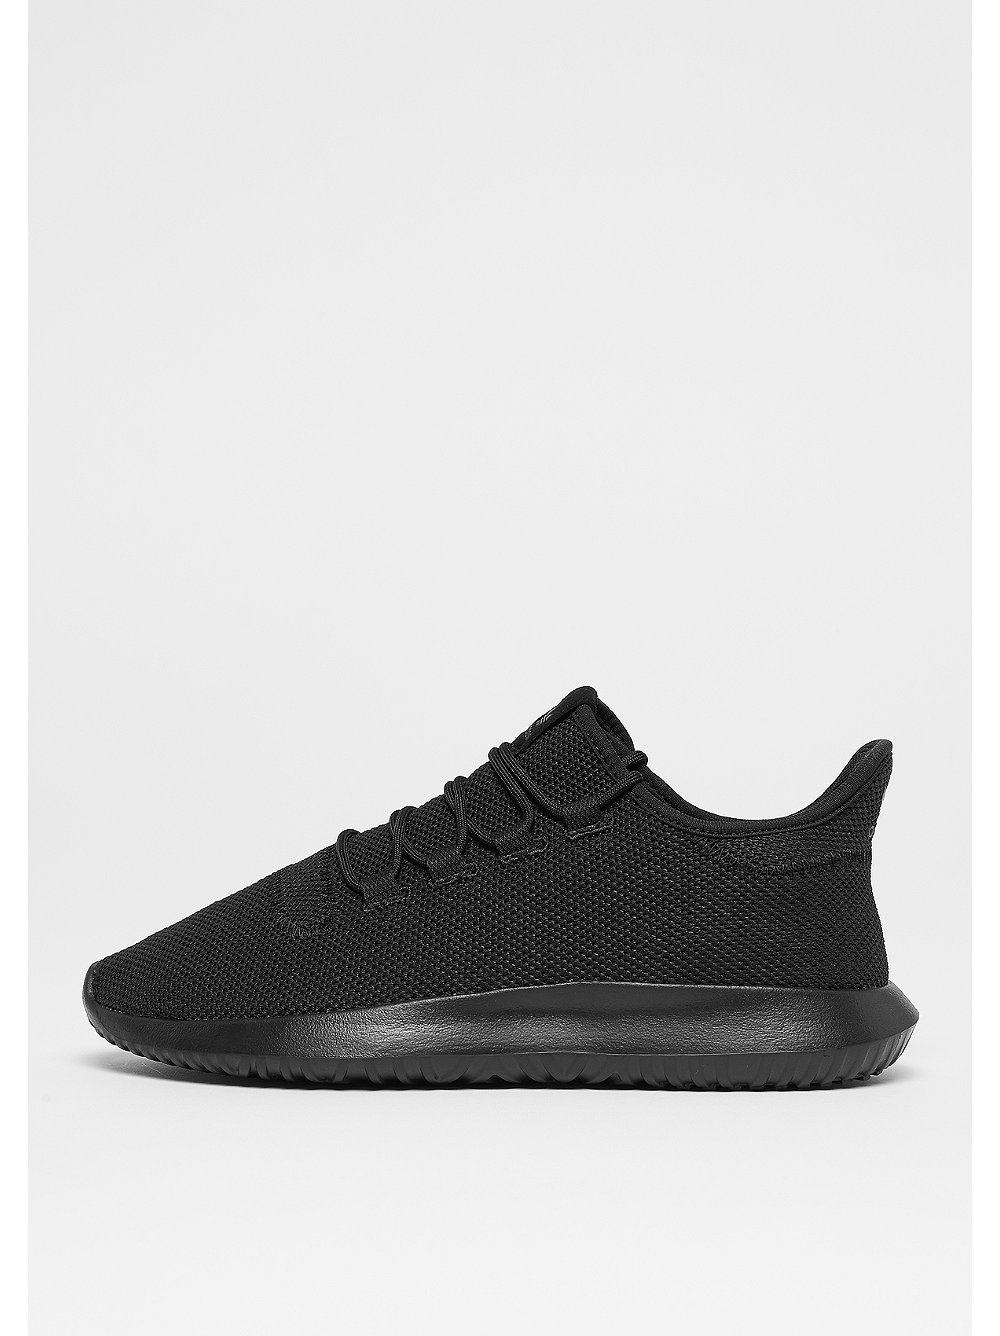 reputable site b80a3 0d9be ebay adidas tubular shadow kaufen 71411 b5a22